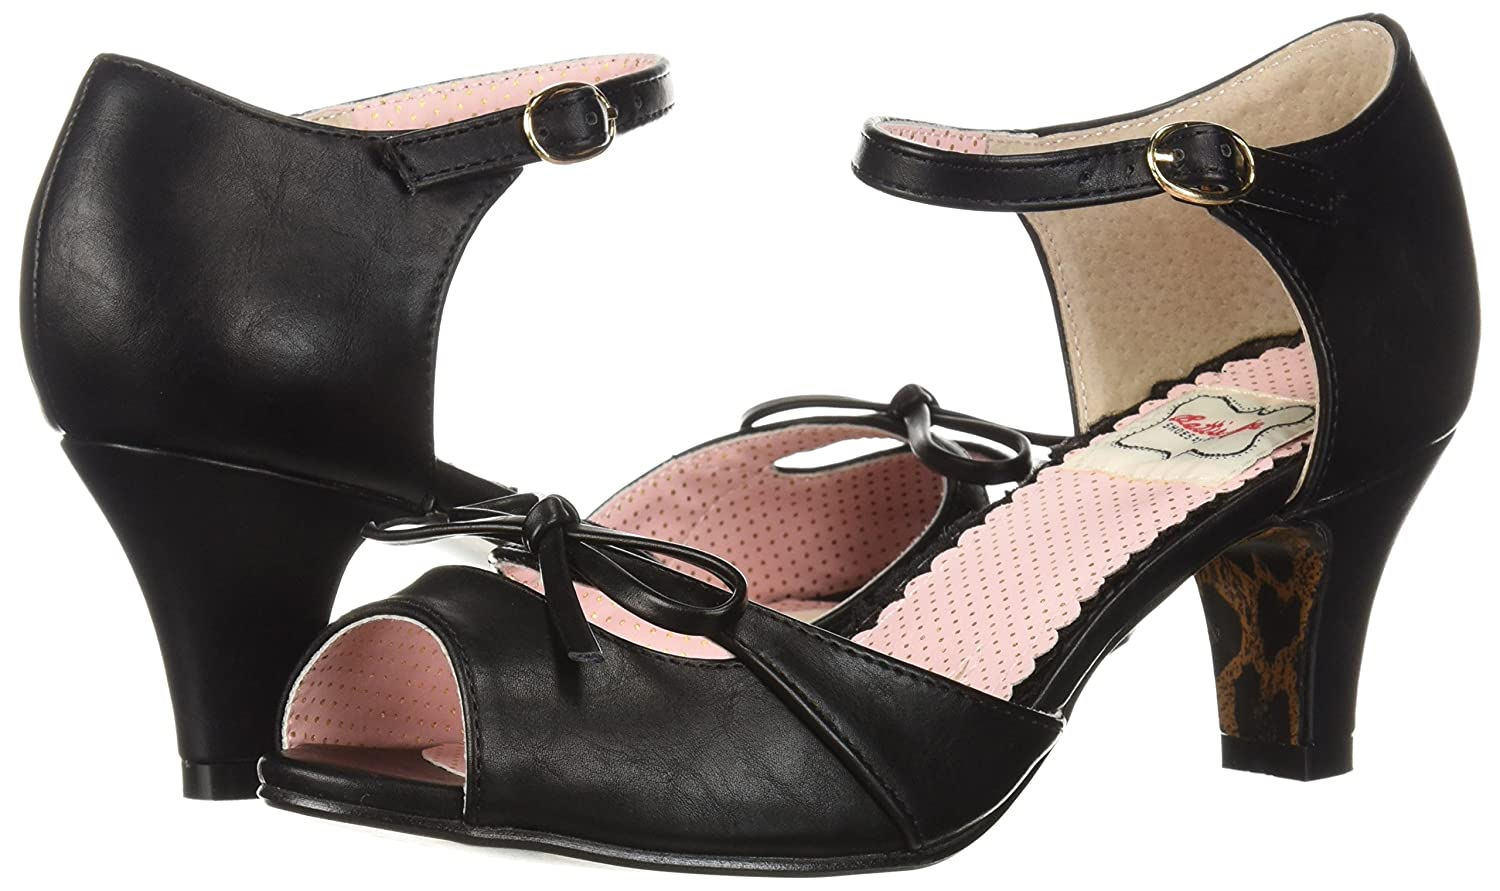 Vintage Style Shoes, Vintage Inspired Shoes Bettie Page Womens Bp250-tegan Heeled Sandal $68.60 AT vintagedancer.com